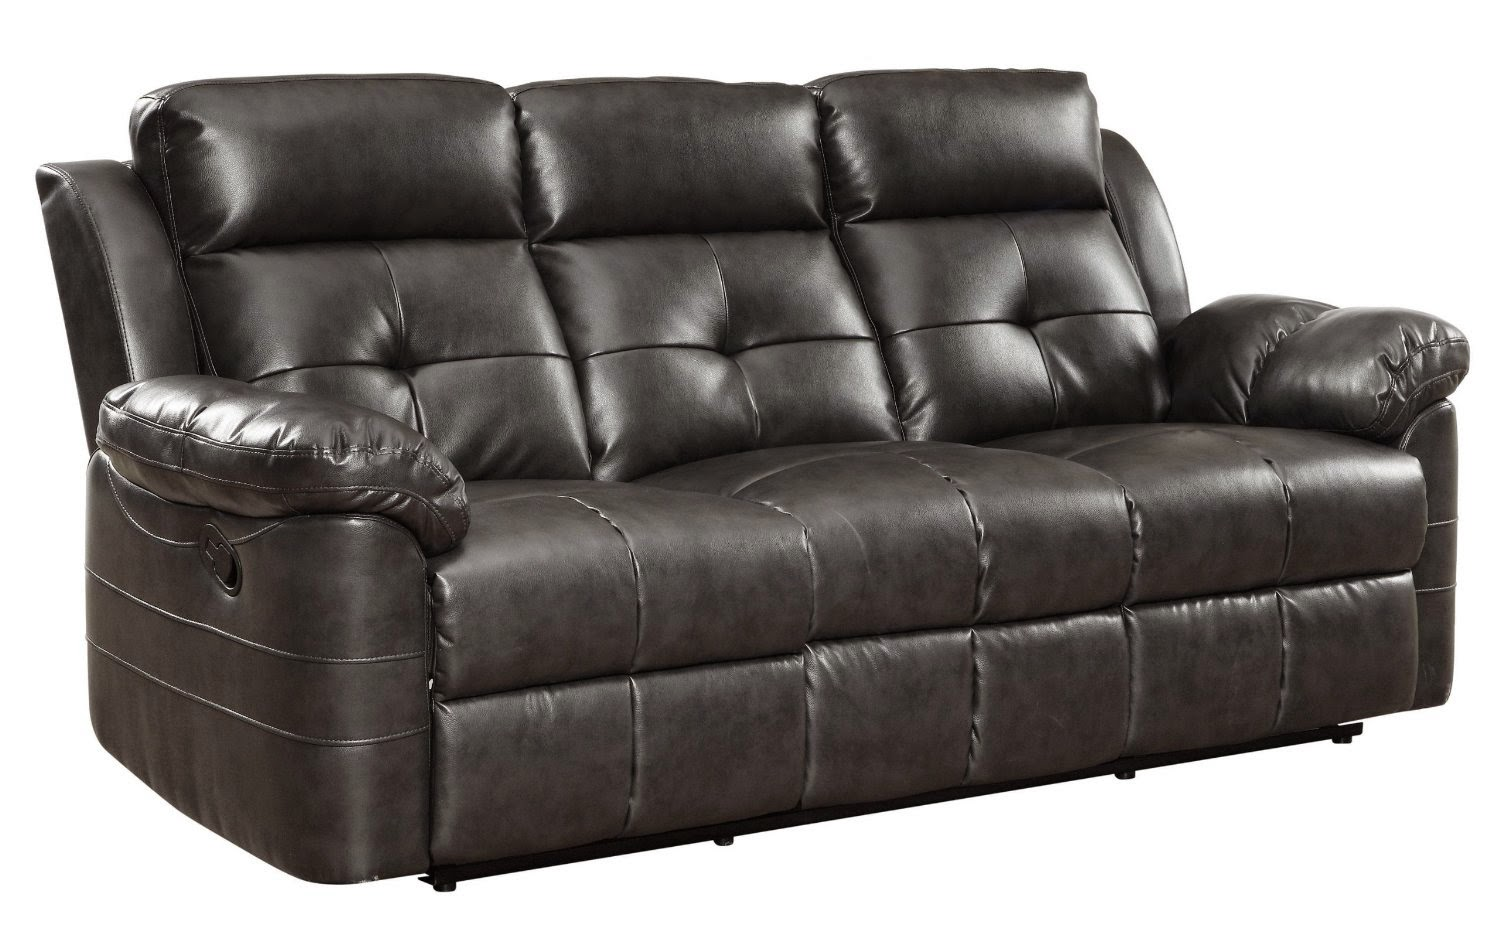 The Best Reclining Sofas Ratings Reviews: Curved Leather ...